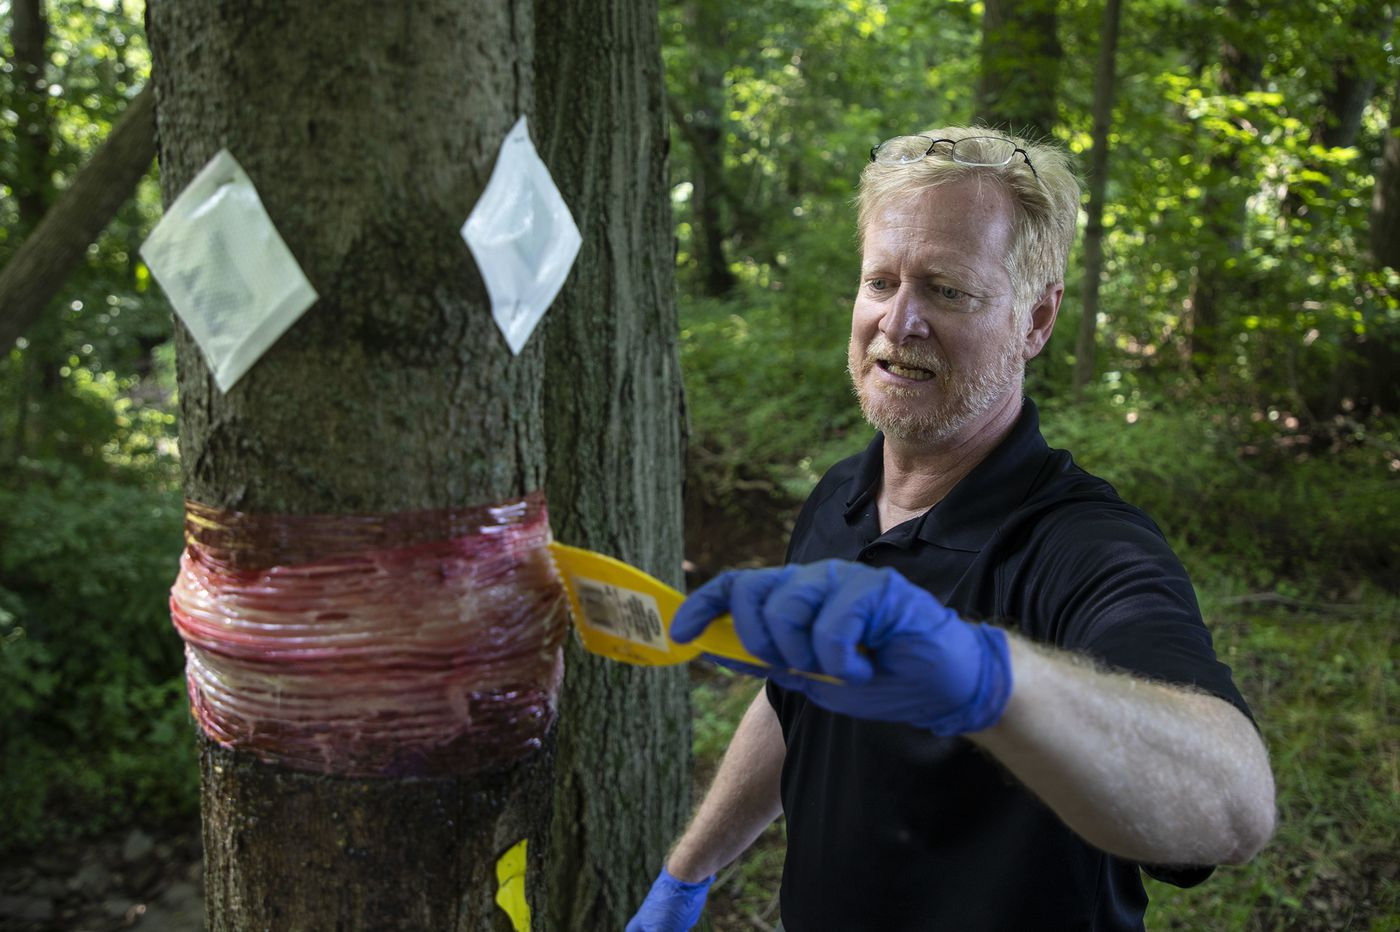 In Pa.'s spotted lanternfly invasion, enter a professor with a sticky trap